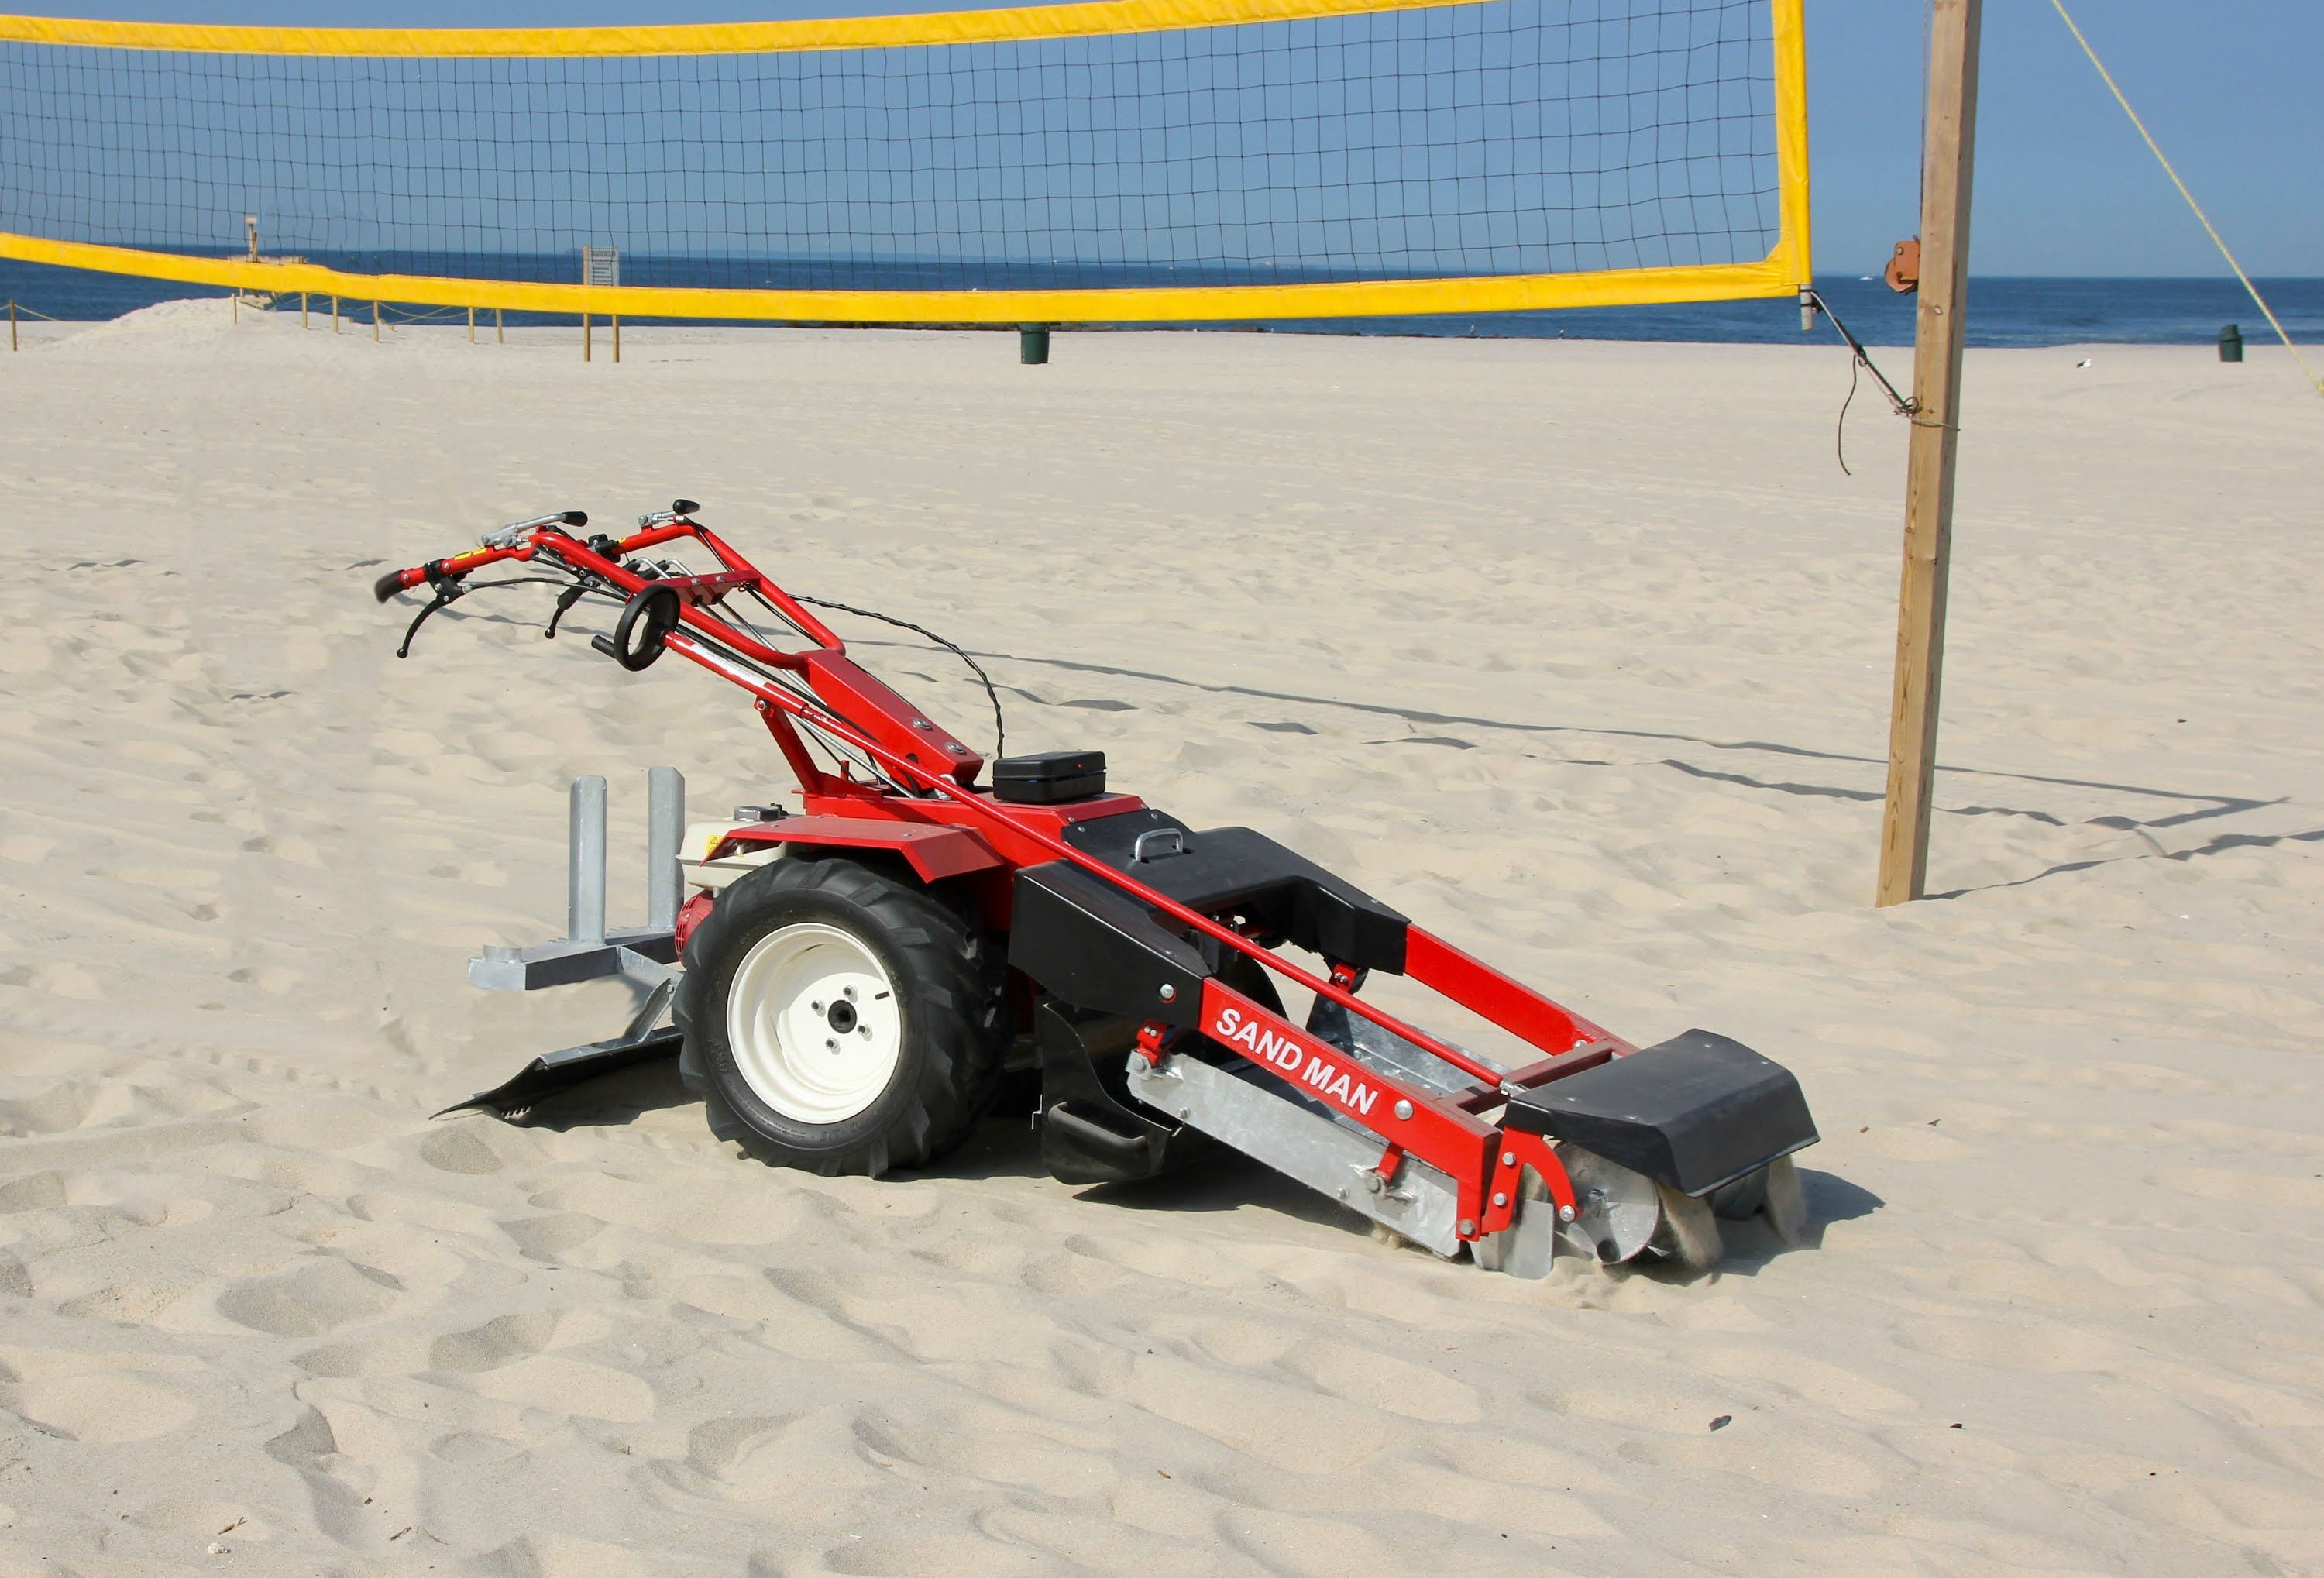 Beach Volleyball Sand Cleaner Sand Volleyball Court Beach Volleyball Court Beach Volleyball